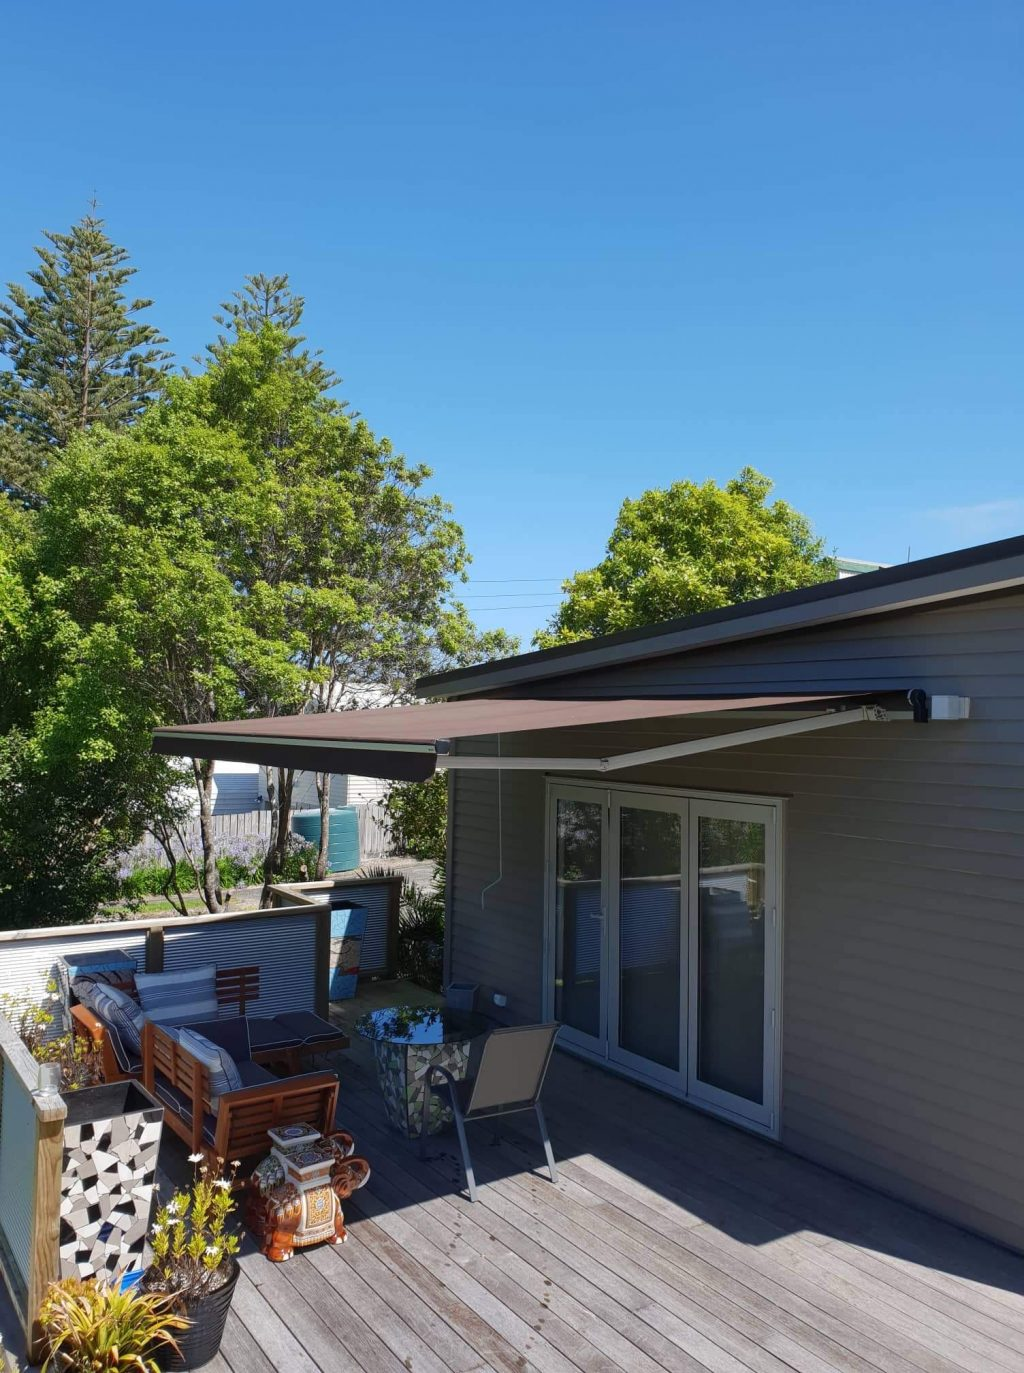 Horizon Retractable Awning in Maraetai